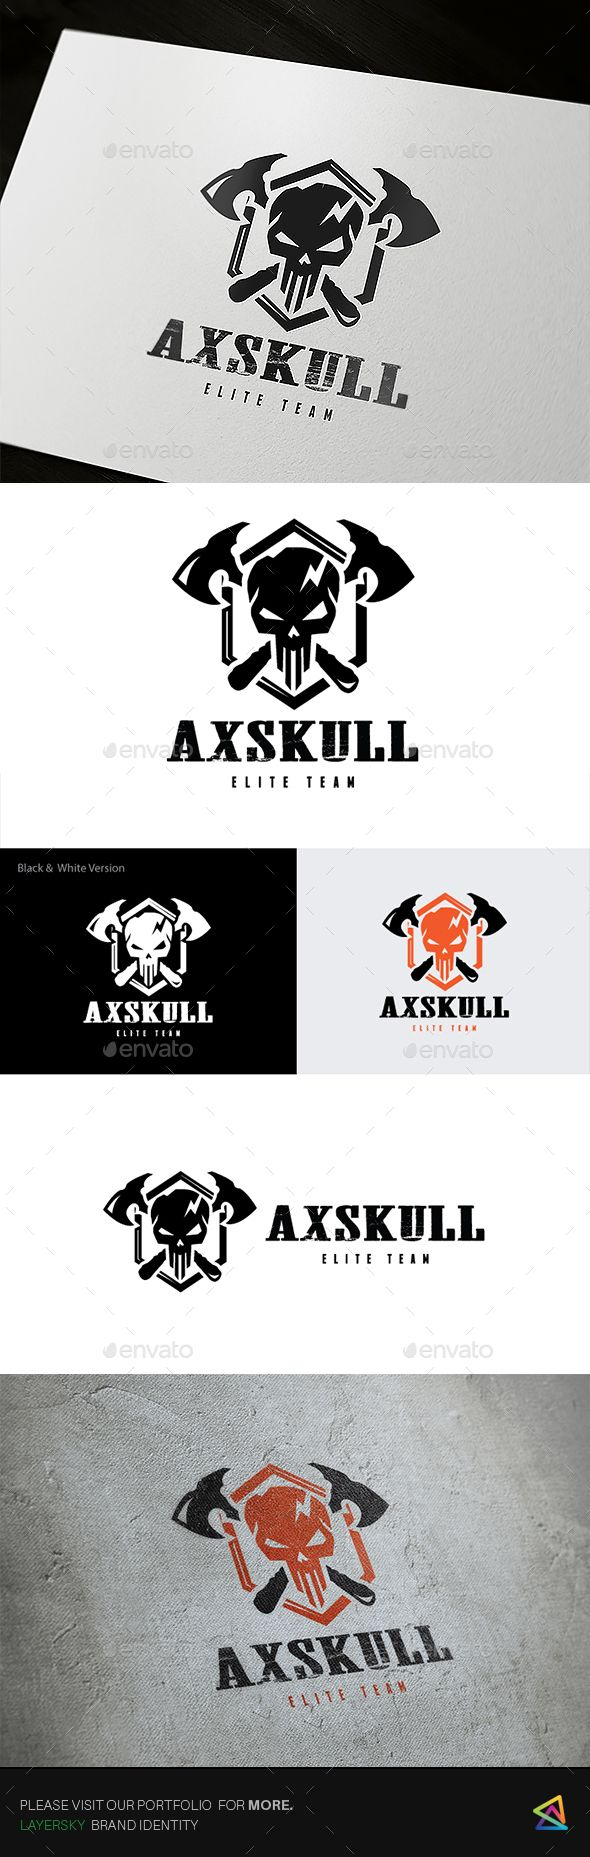 Ax Skull Logo — Transparent PNG #gang #fun • Available here → https://graphicriver.net/item/ax-skull-logo/17512930?ref=pxcr